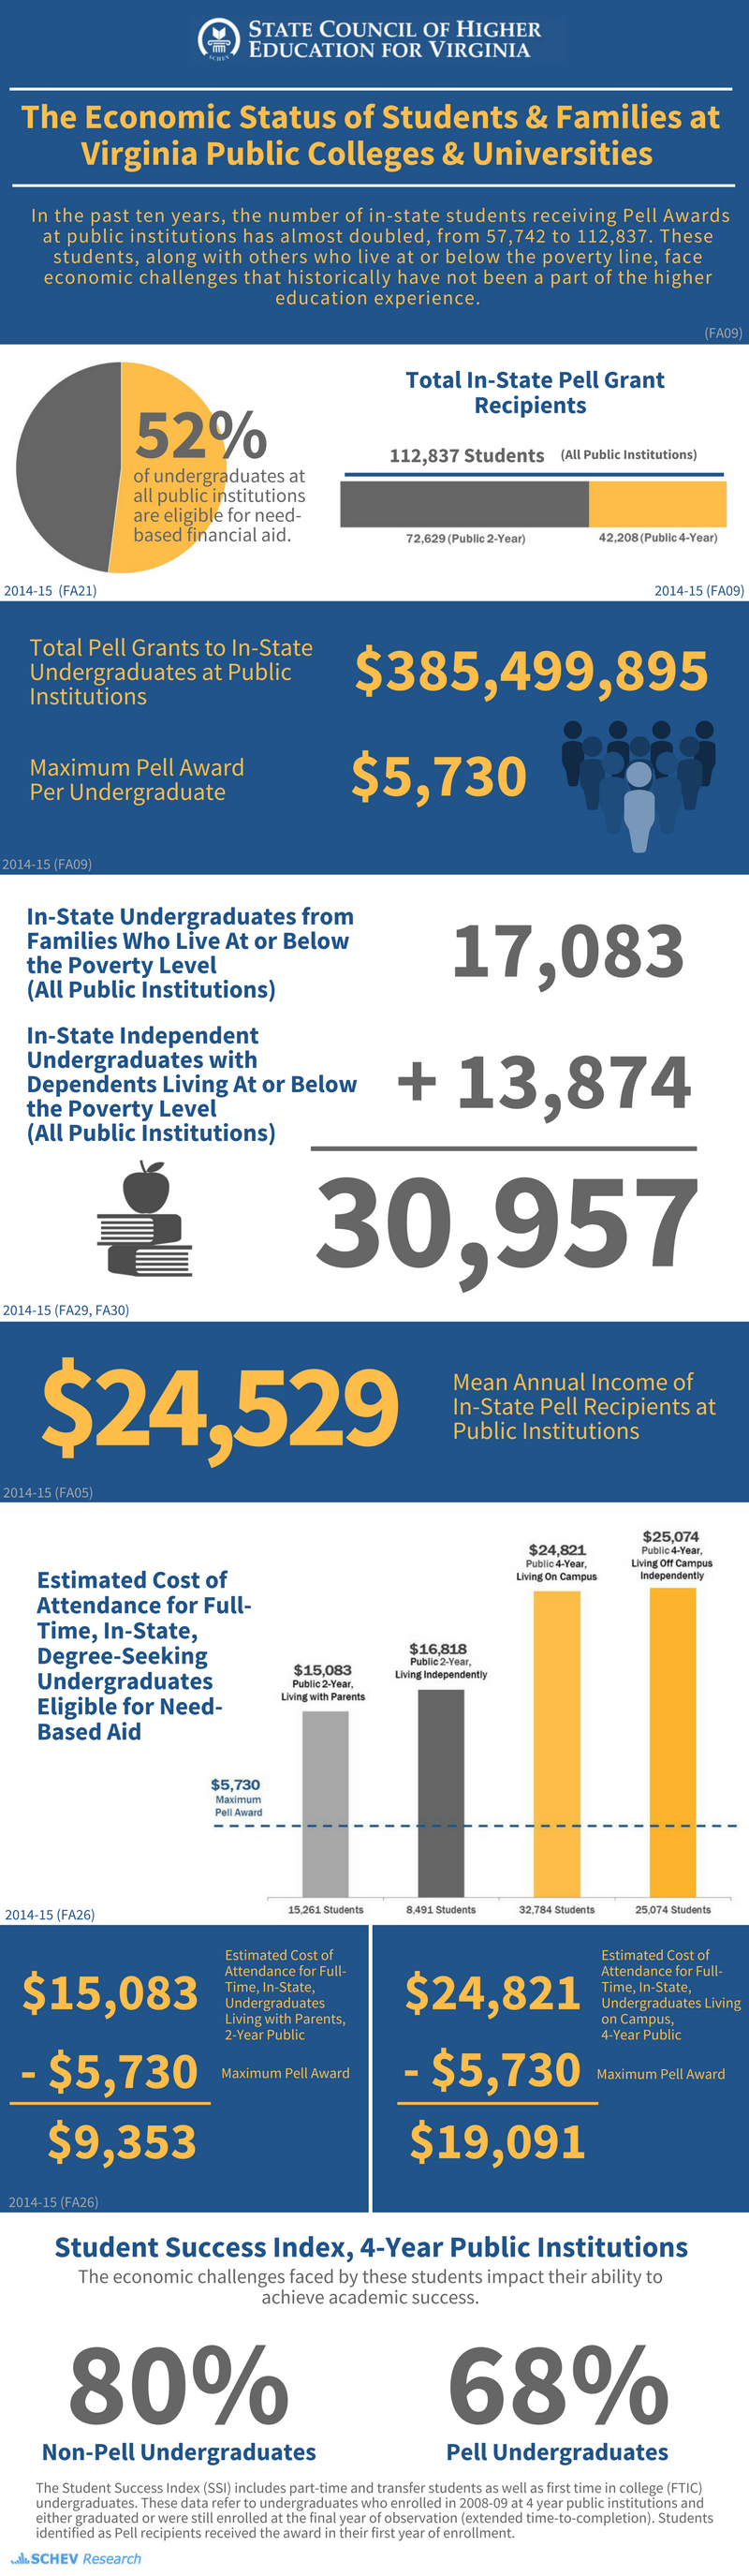 Infographic: The State Council of Higher Education The Economic Status of Students and Families at Virginia Public Colleges & Universities In the past ten years, the number of in-state students receiving Pell Awards at public institutions has almost doubled, from 57,742 to 112,837. These students, along with others who live at or below the poverty line, face economic challenges that historically have not a part of the higher education experience.<br /><br />52% of undergraduate at public institutions are eligible for need-based financial aid. 112,837 Total In-State Pell Grant Recipients 72,629 at the public two-year colleges 42,208 at the public four-year colleges. $385,499,895 Total Pell Grants to In-State Undergraduates at Public Institutions $5,730 Maximum Pell Award Per Undergraduate 18,812 Undergraduates from Families Who Live At or Below the Poverty Level (Public Institutions) 14,422 Independent Undergraduates with Dependents Living At or Below the Poverty Level (Public Institutions) 33,234 student-families from, or in, poverty $24,529 Mean Annual Income of In-State Pell Recipients at Public Institutions $15,083 Average annual estimated cost of attendance for a full-time, in-state undergraduate, living with parents at a public two-year, after a maximum Pell award of $5,730, there is $9,353  remaining. $24,821 Average annual estimated cost of attendance for a full-time, in-state undergraduate, living with parents at a public four-year, after a maximum Pell award of $5,730, there is $19,091  remaining.<br /><br />SCHEV?s Student Success Index at four-year public institutions is 80% for non-Pell undergraduates and 68% for Pell students. The Student Success Index (SSI) includes part-time and transfer students as well as first-time in college (FTIC) undergraduates. These data refer to undergraduate enrolled in 2008-09 at 4 year public institutions and either graduated or were still enrolled at final year of observation  (extended time-to-completion). Students identified as Pell recipients received the award in their first year of enrollment.